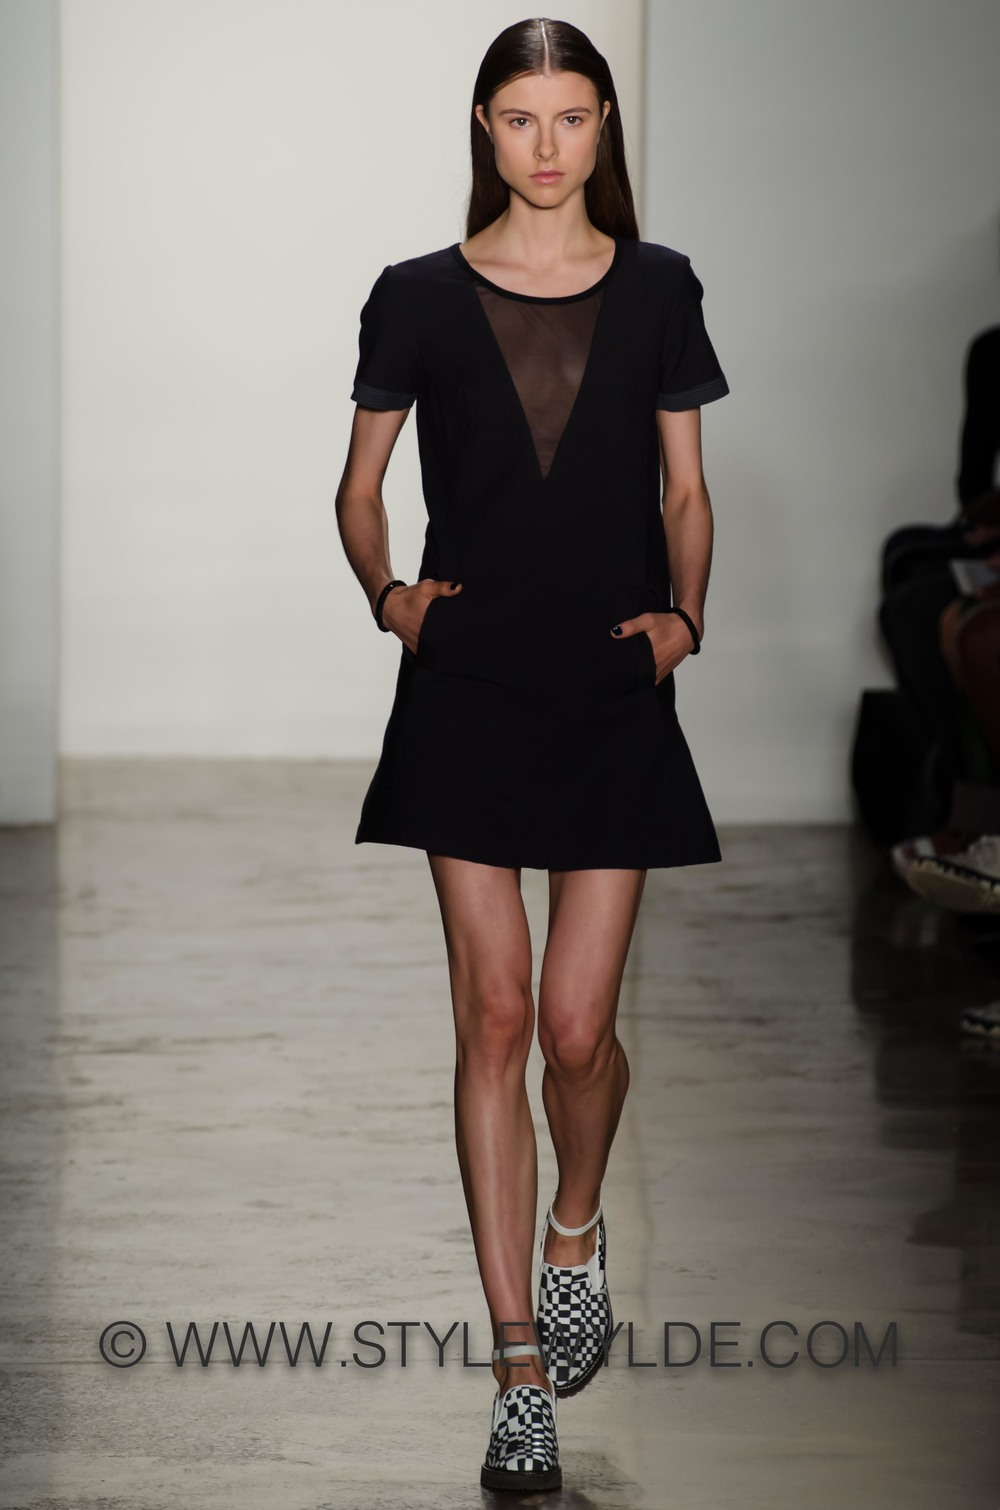 stylewylde_timo_weiland_gallery_ss2014-10.jpg